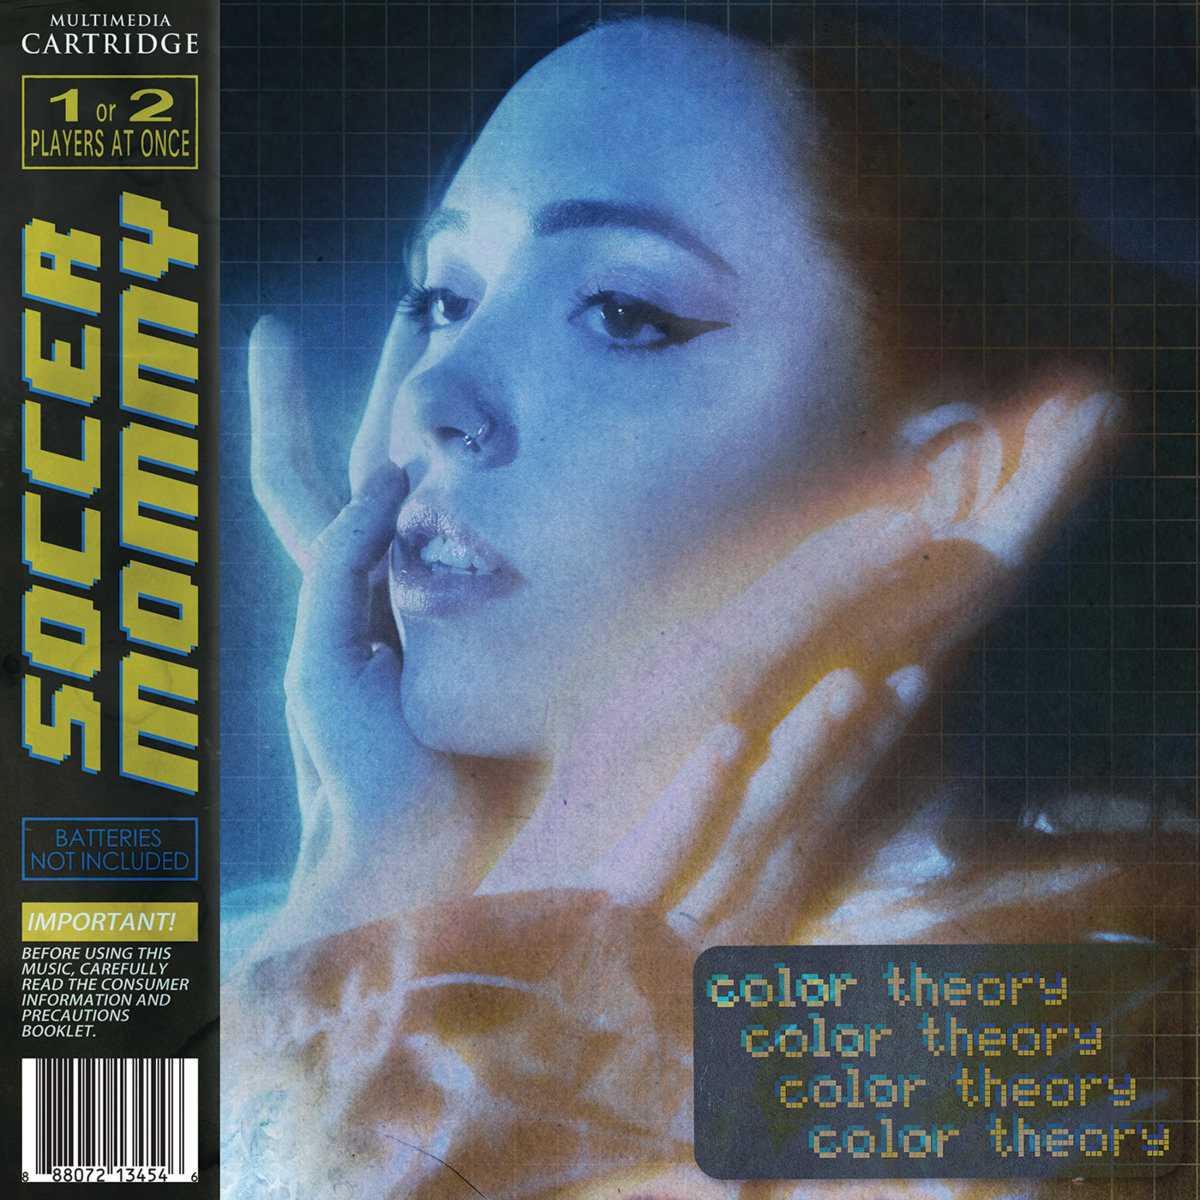 soccer-mommy-color-theory-1607540599